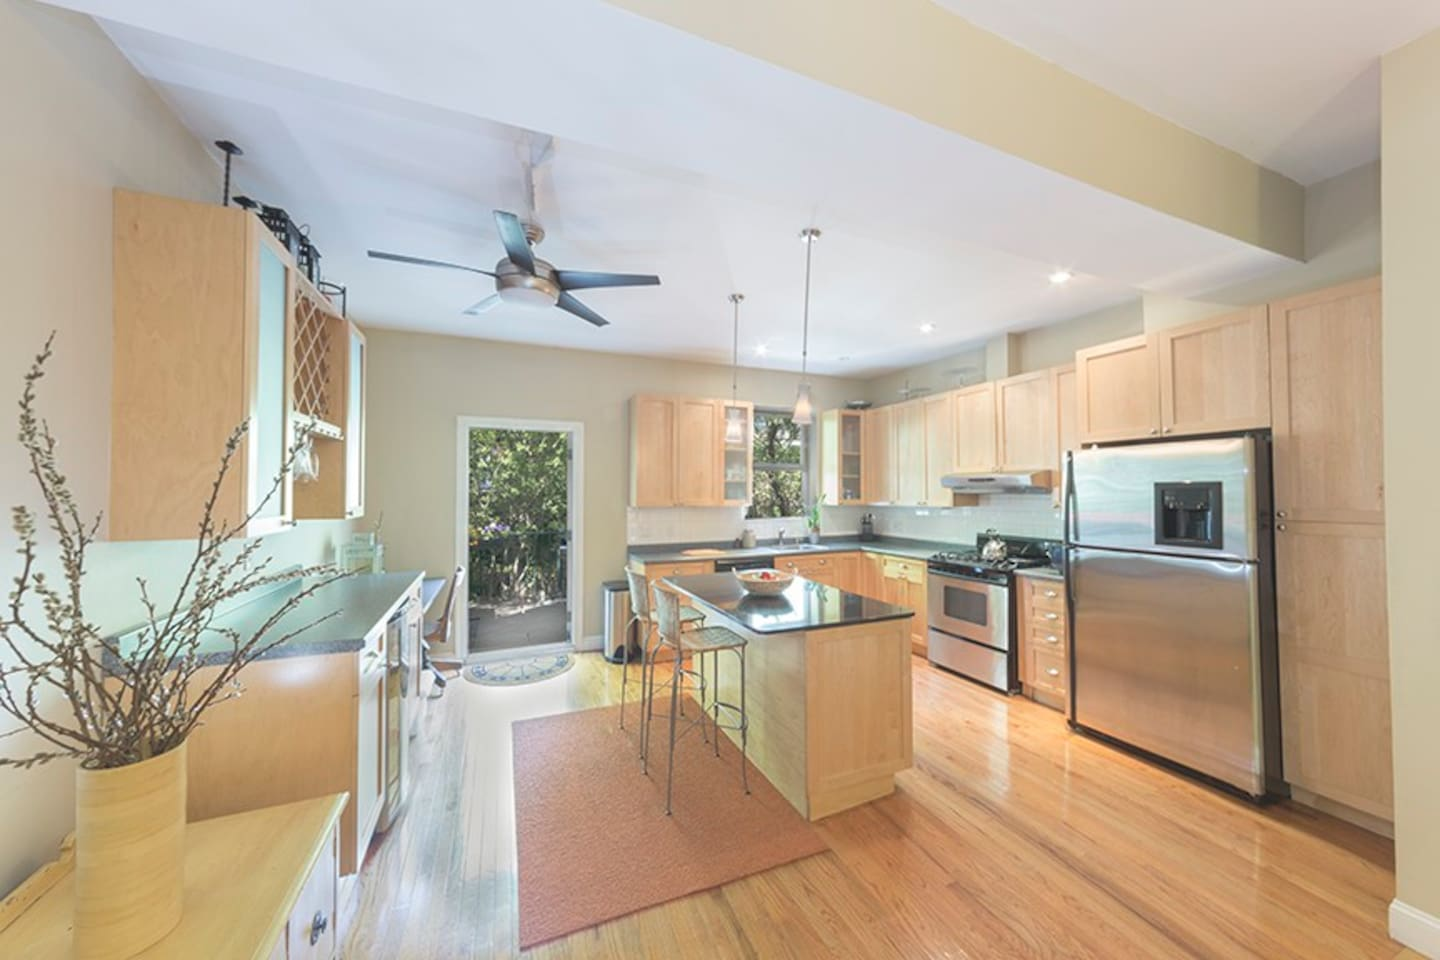 Parlor (second floor) level w/ large open kitchen, terrace and high ceilings